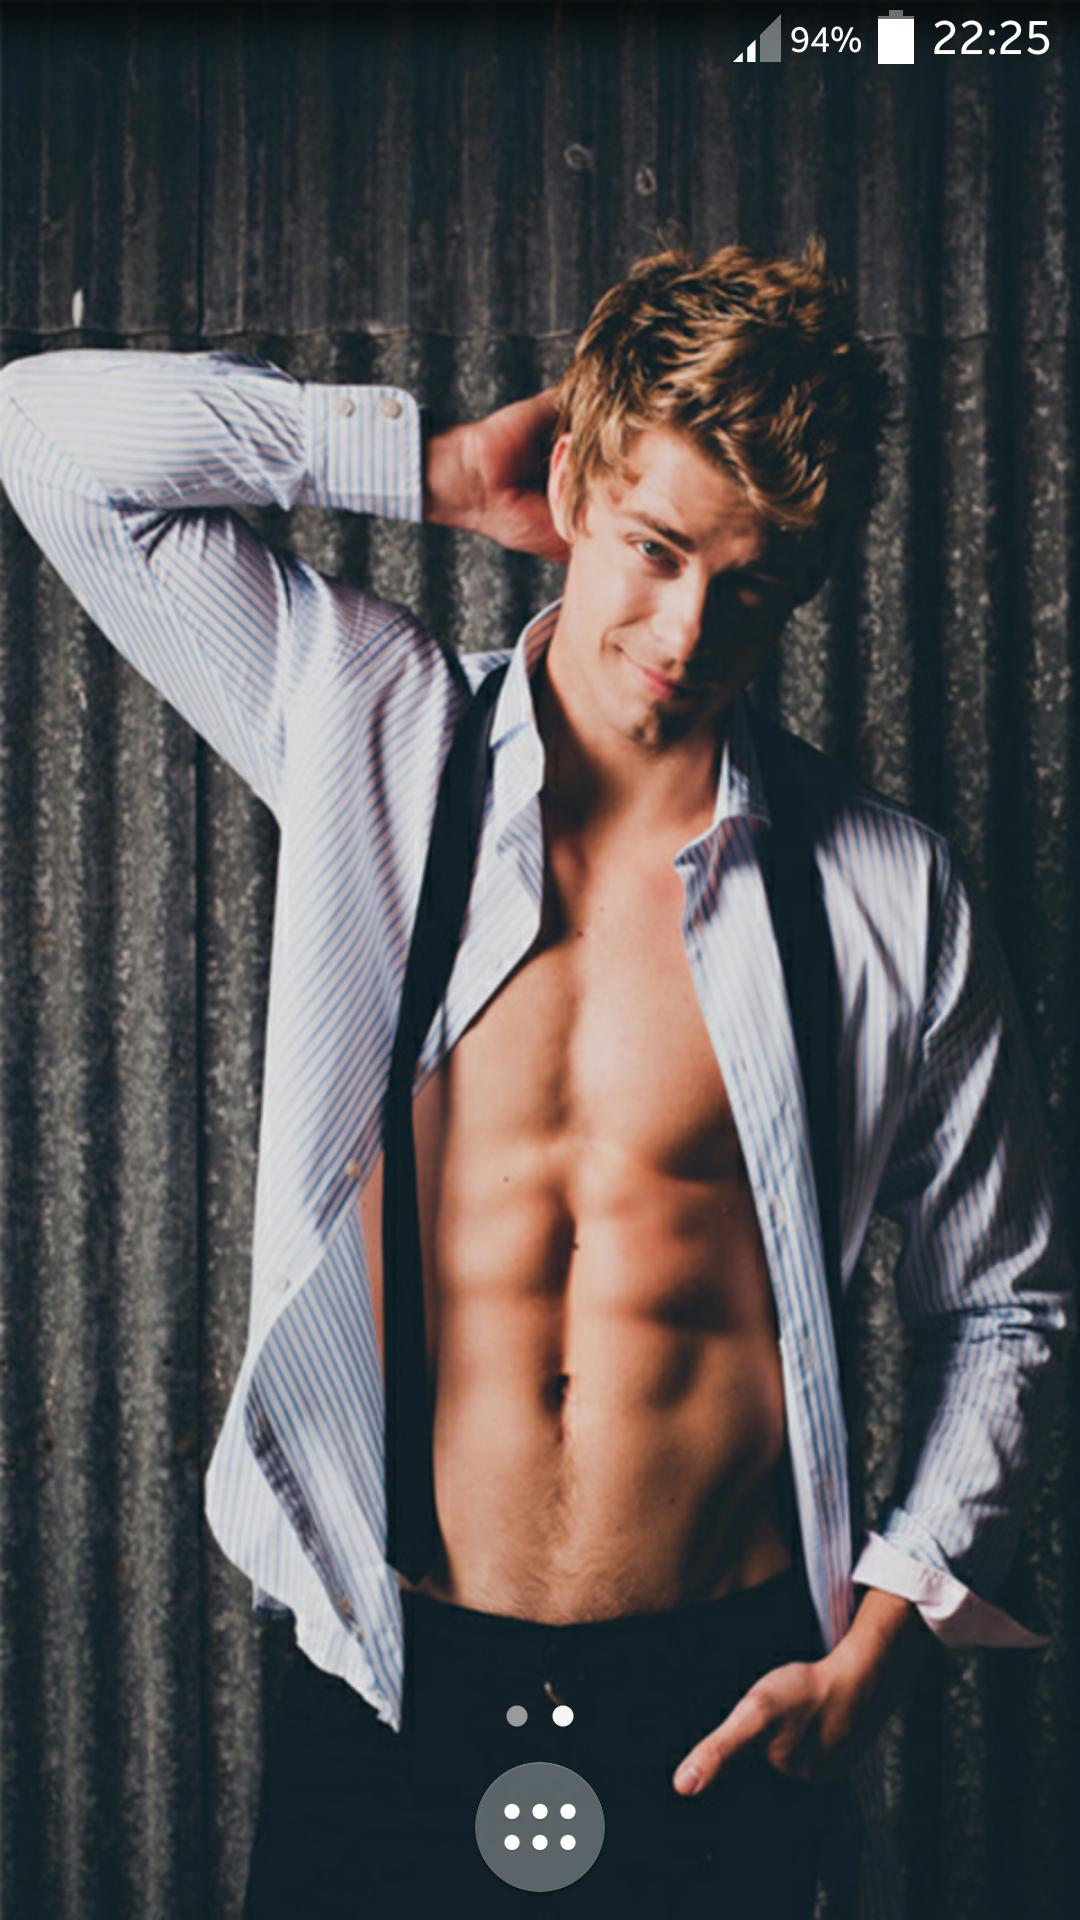 Sexy Men Hot Guys Wallpaper Hd For Android Apk Download